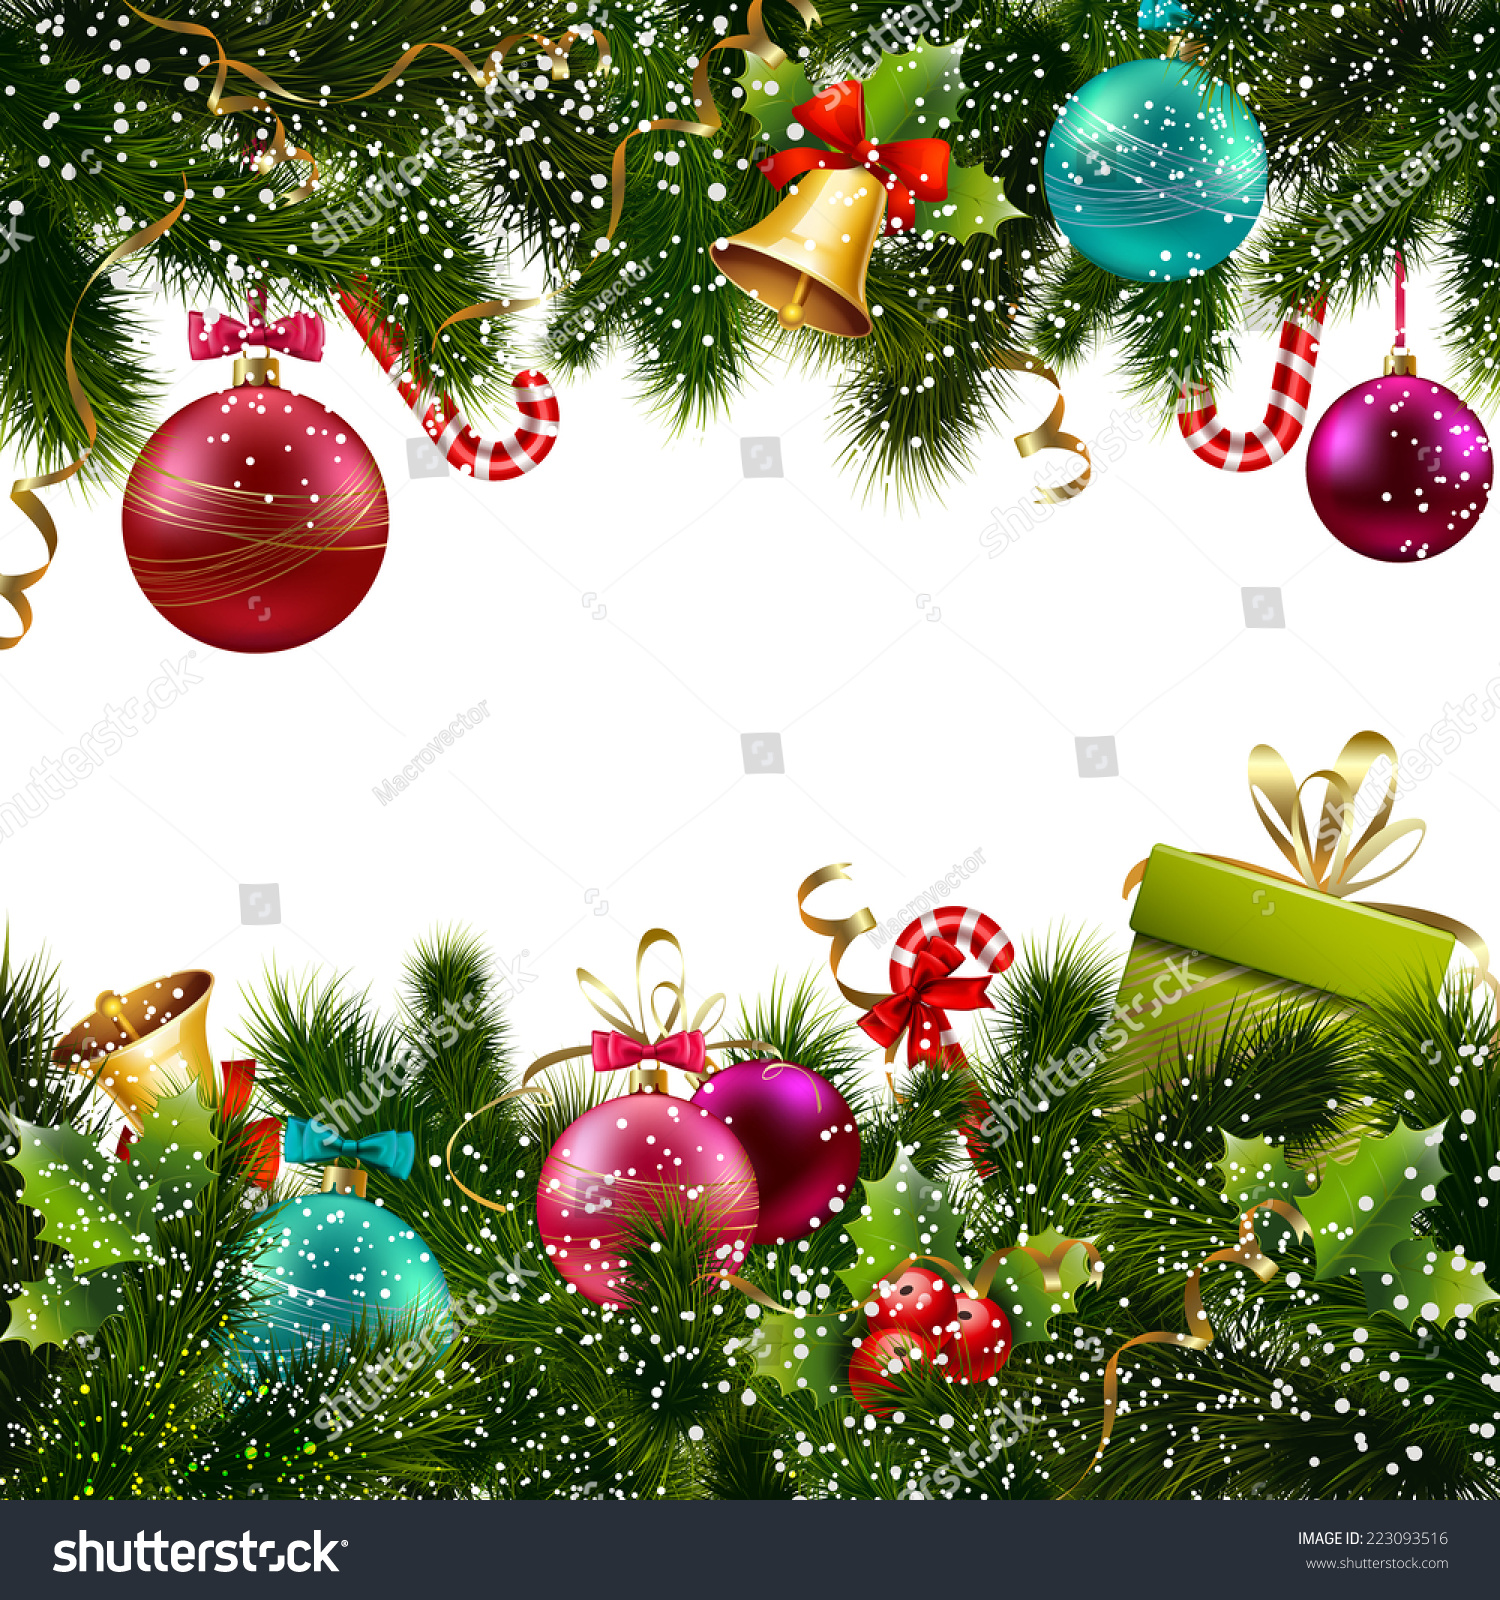 Merry Christmas Happy New Year Greeting Stock Vector 223093516 ...